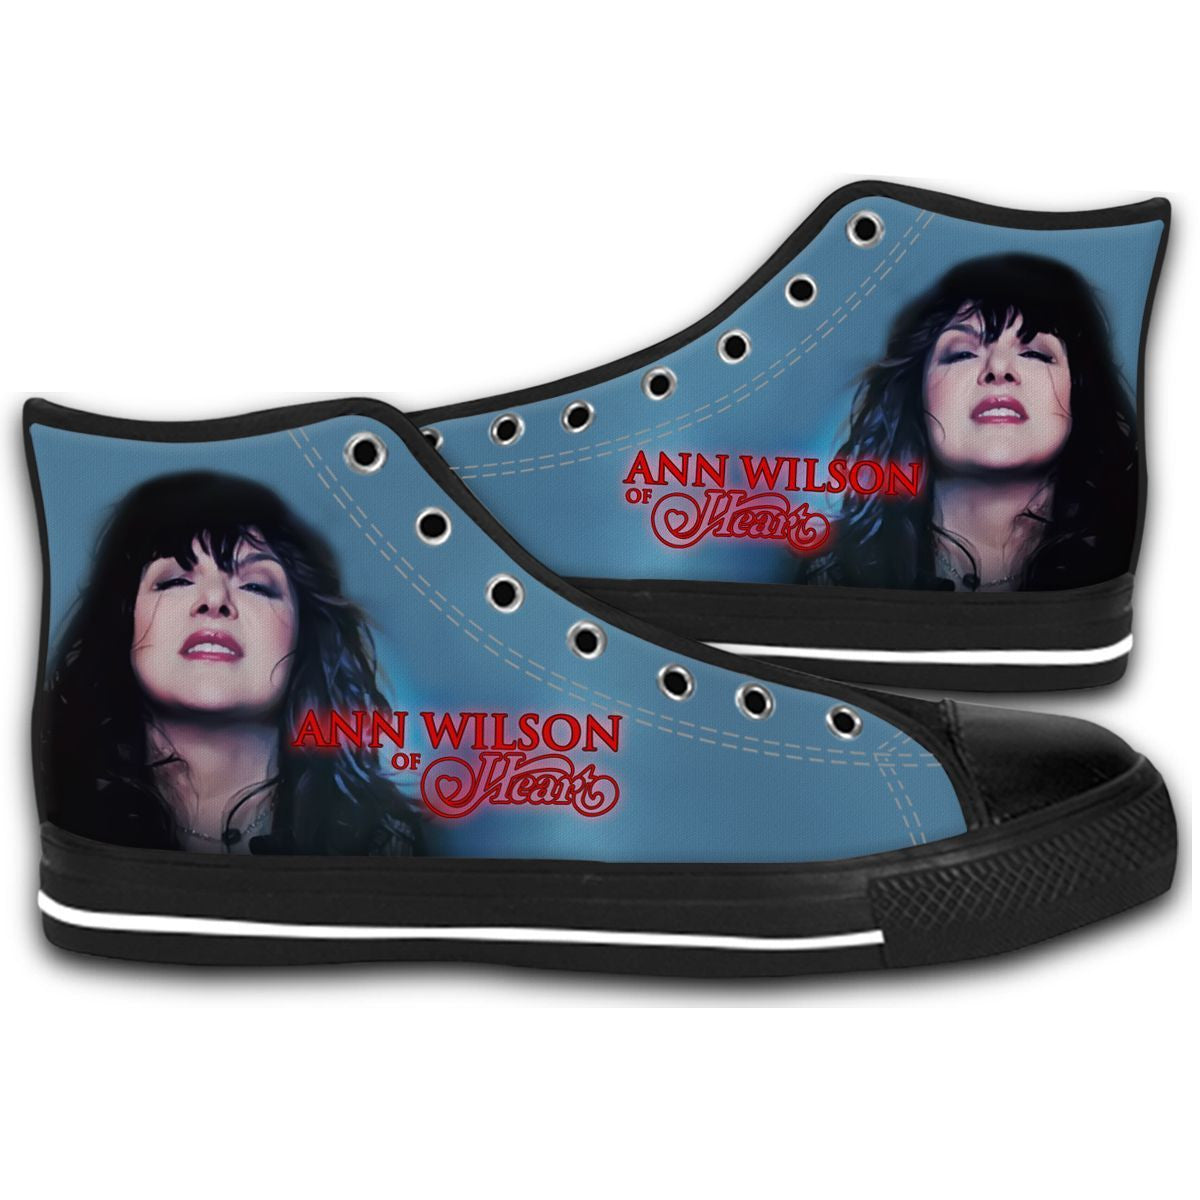 Ann Wilson of Heart solo tour concert 2017 CANVAS STYLE SHOES FASHION SNEAKERS